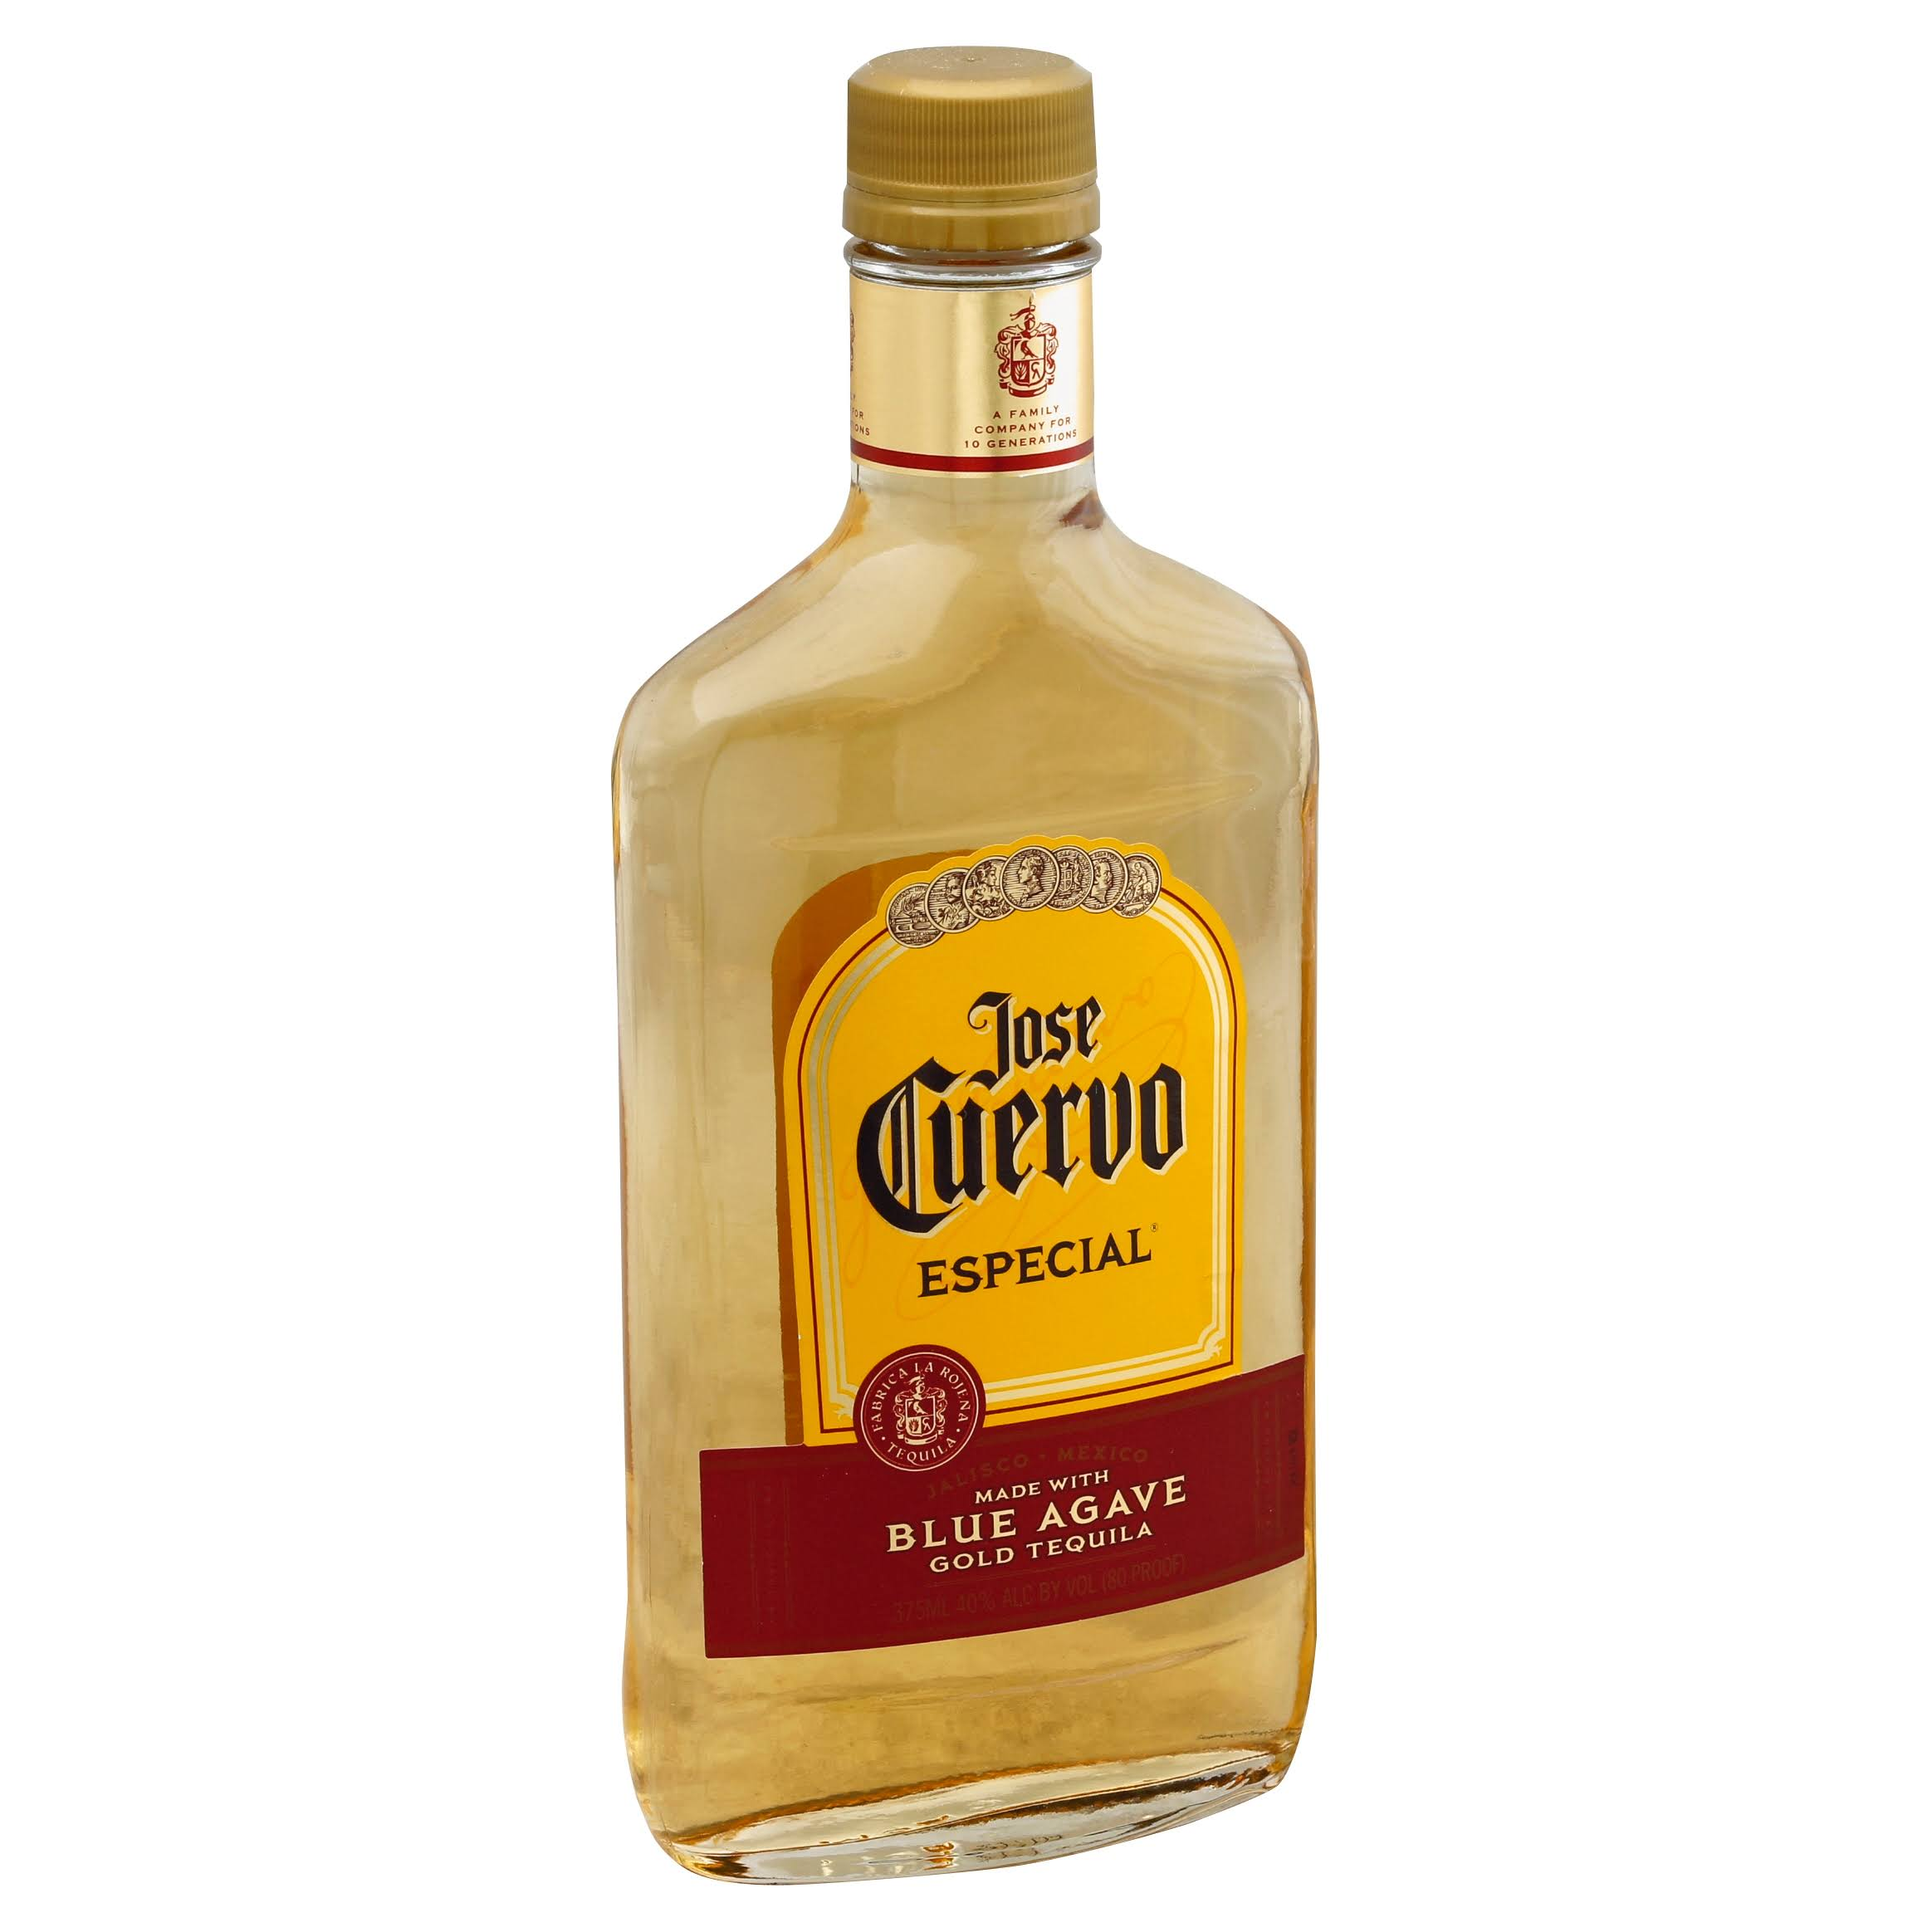 Jose Cuervo Especial Gold Tequila - 375 ml bottle